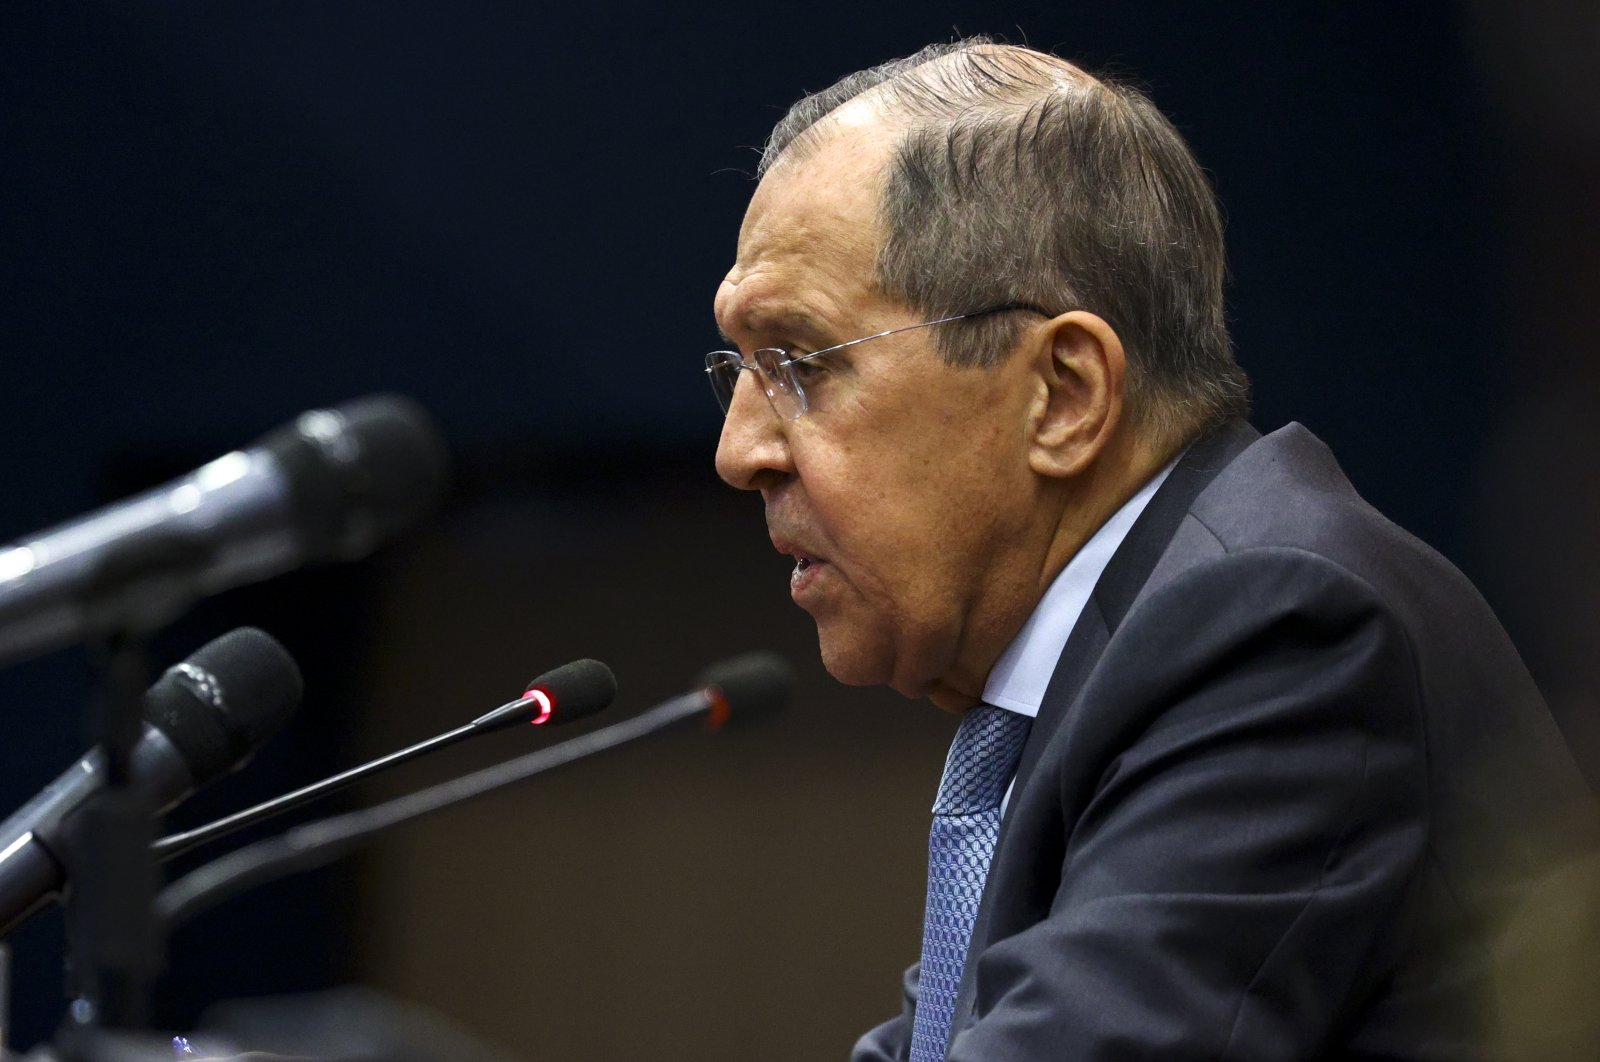 Russian Foreign Minister Sergey Lavrov speaks to the media during his and Indian Foreign Minister Subrahmanyam Jaishankar joint news conference in New Delhi, India, April 6, 2021. (Russian Foreign Ministry Press Service via AP)